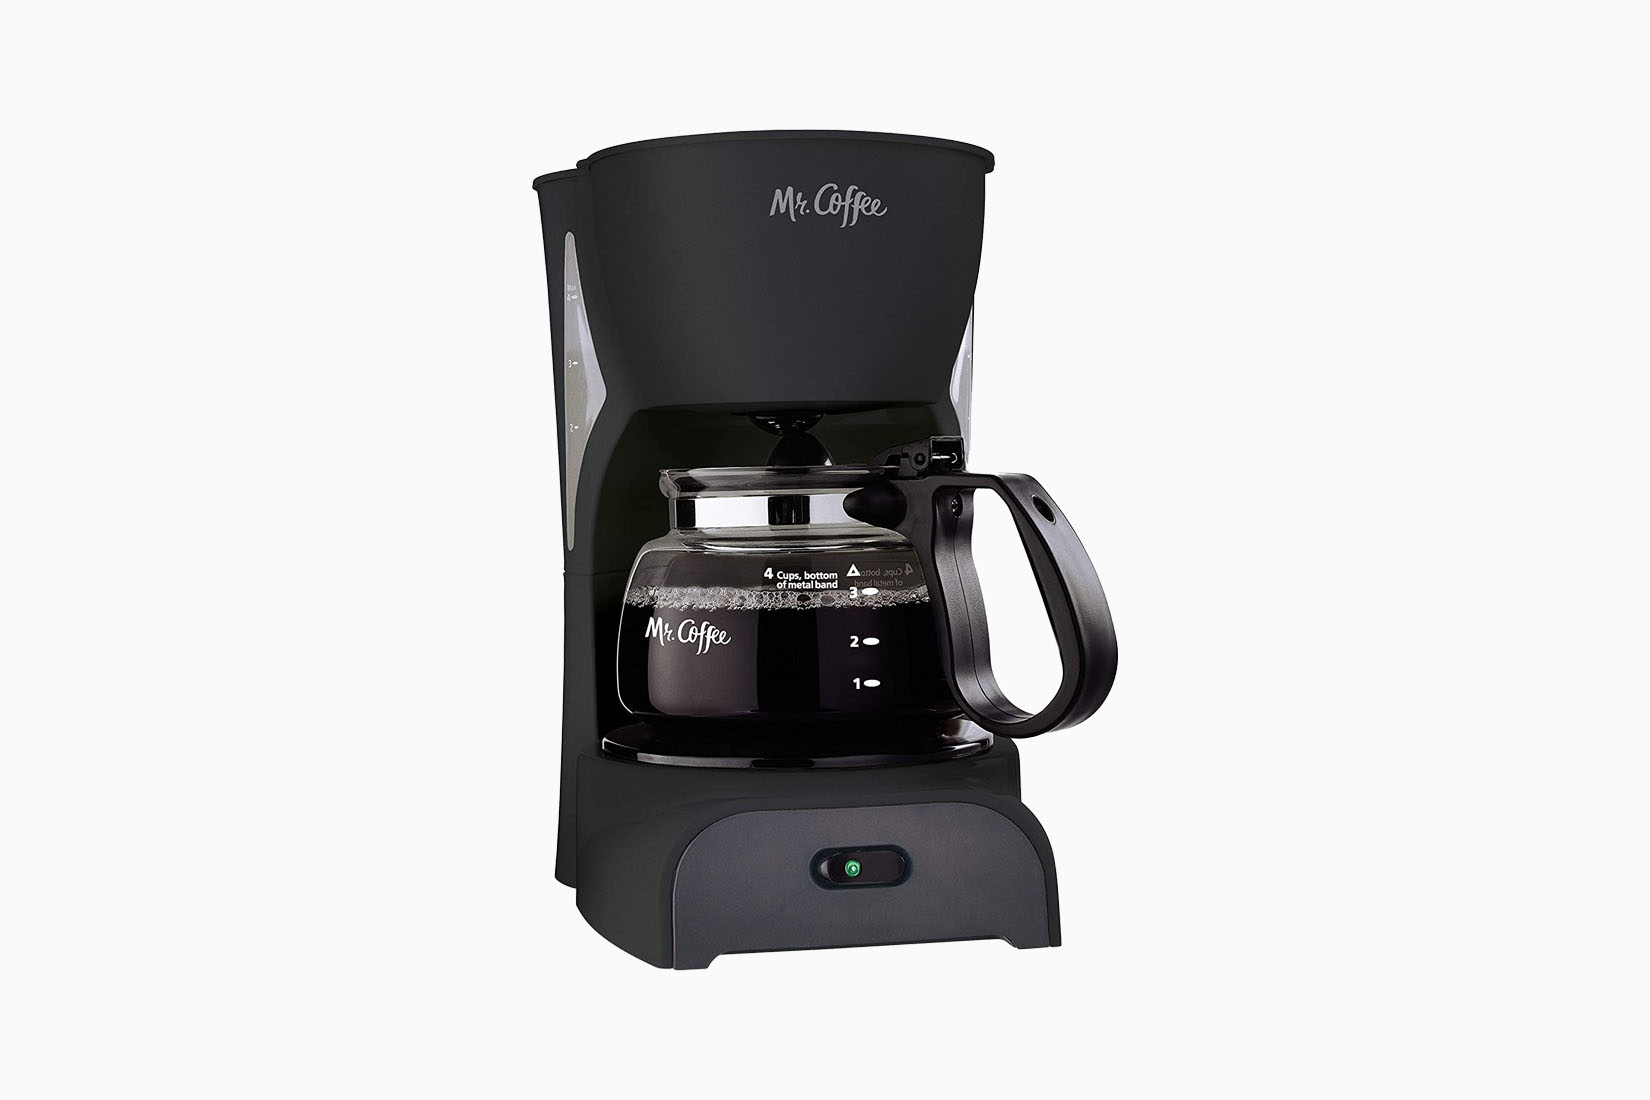 best drip coffee makers mr coffee review Luxe Digital